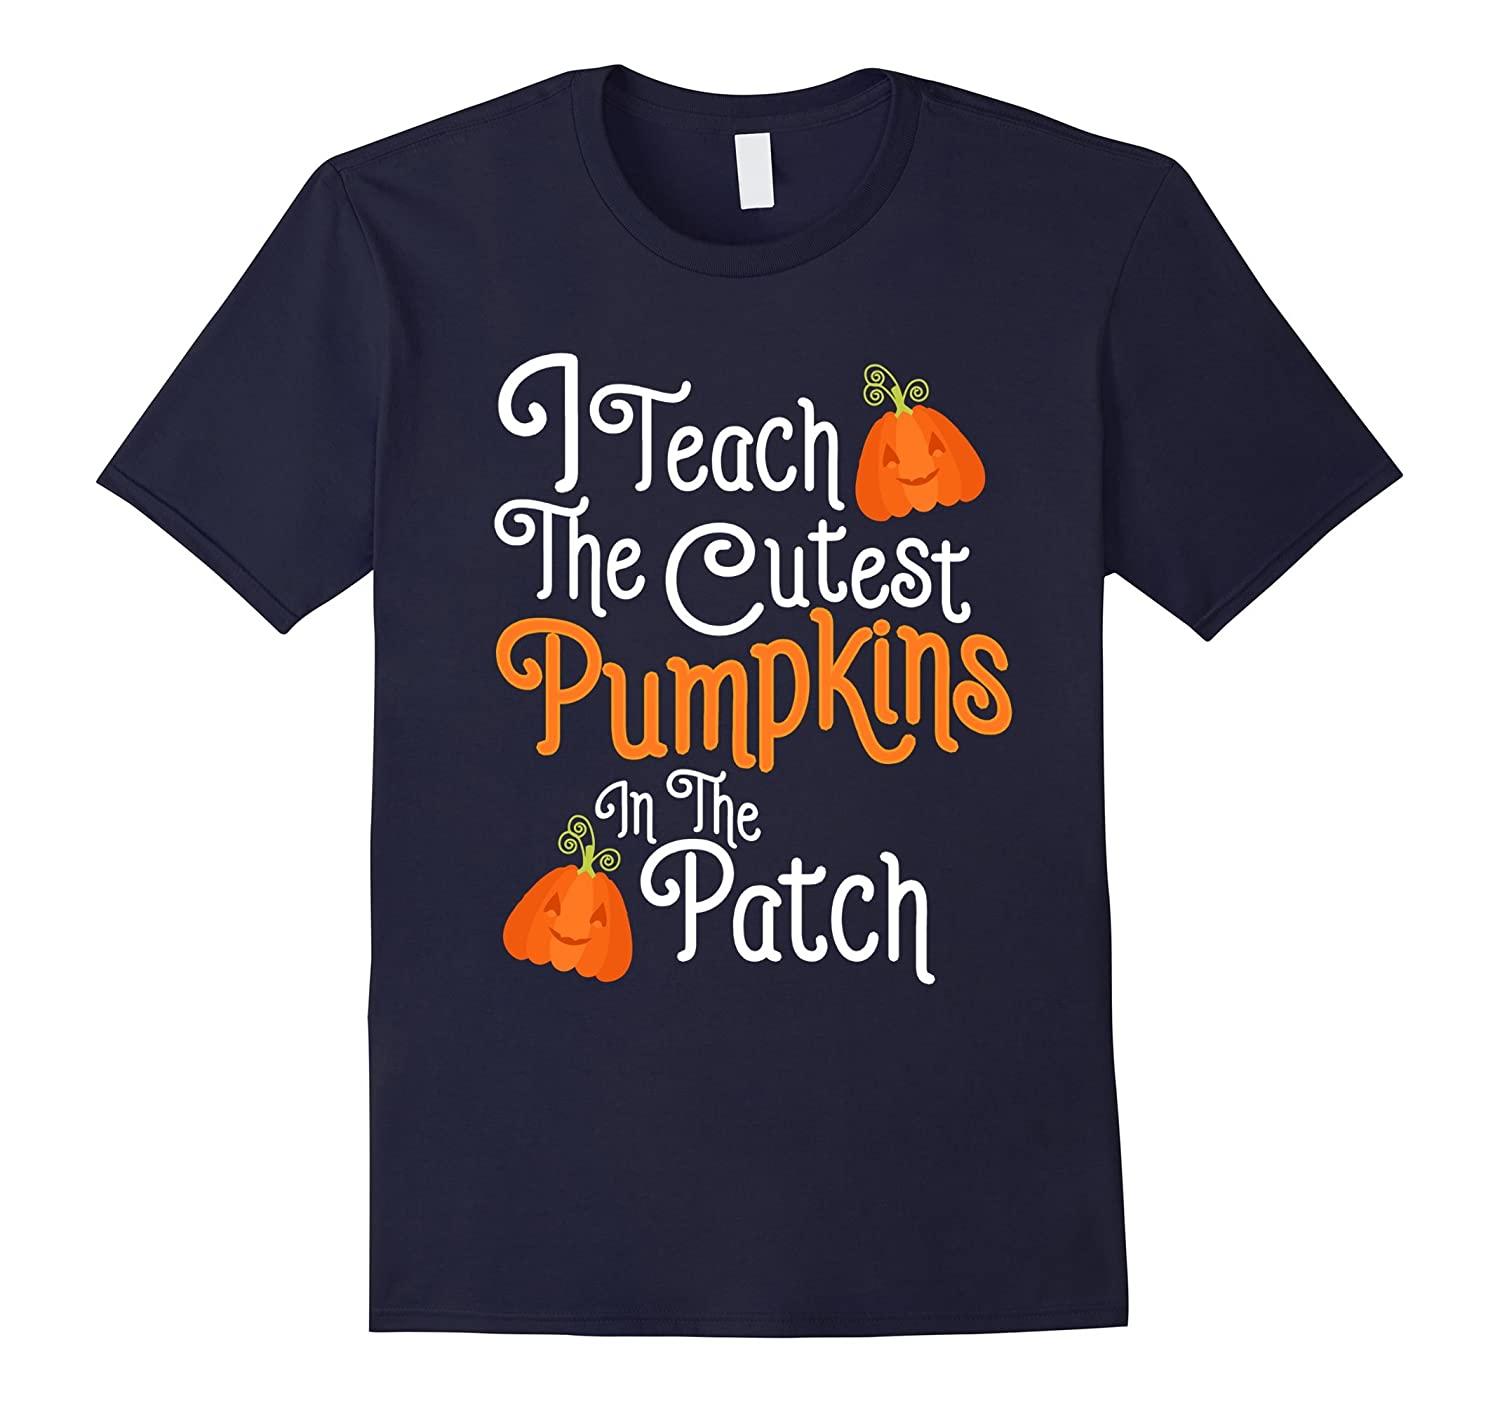 Funny Halloween Shirt For Teachers With Pumpkins-T-Shirt